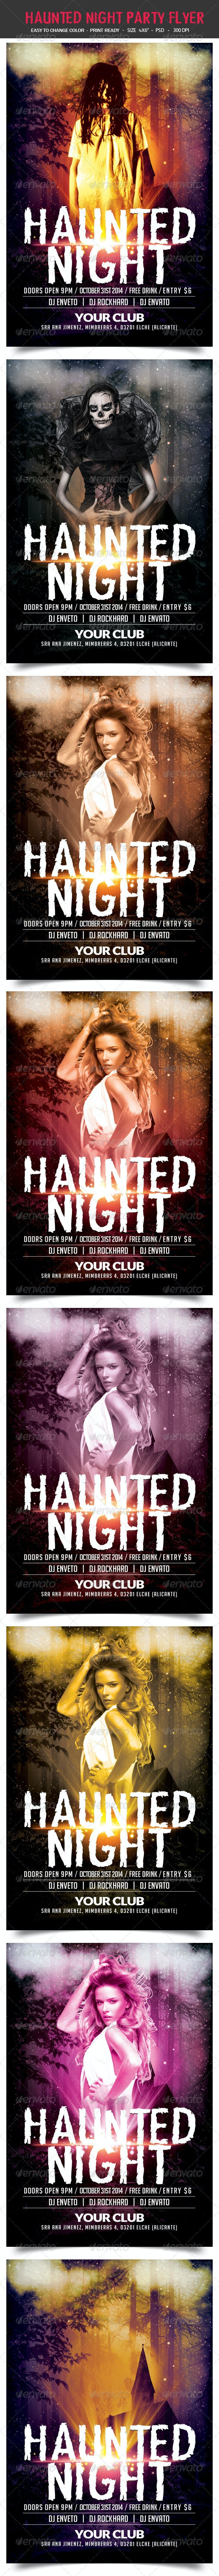 Haunted Night Party Flyer - Clubs & Parties Events